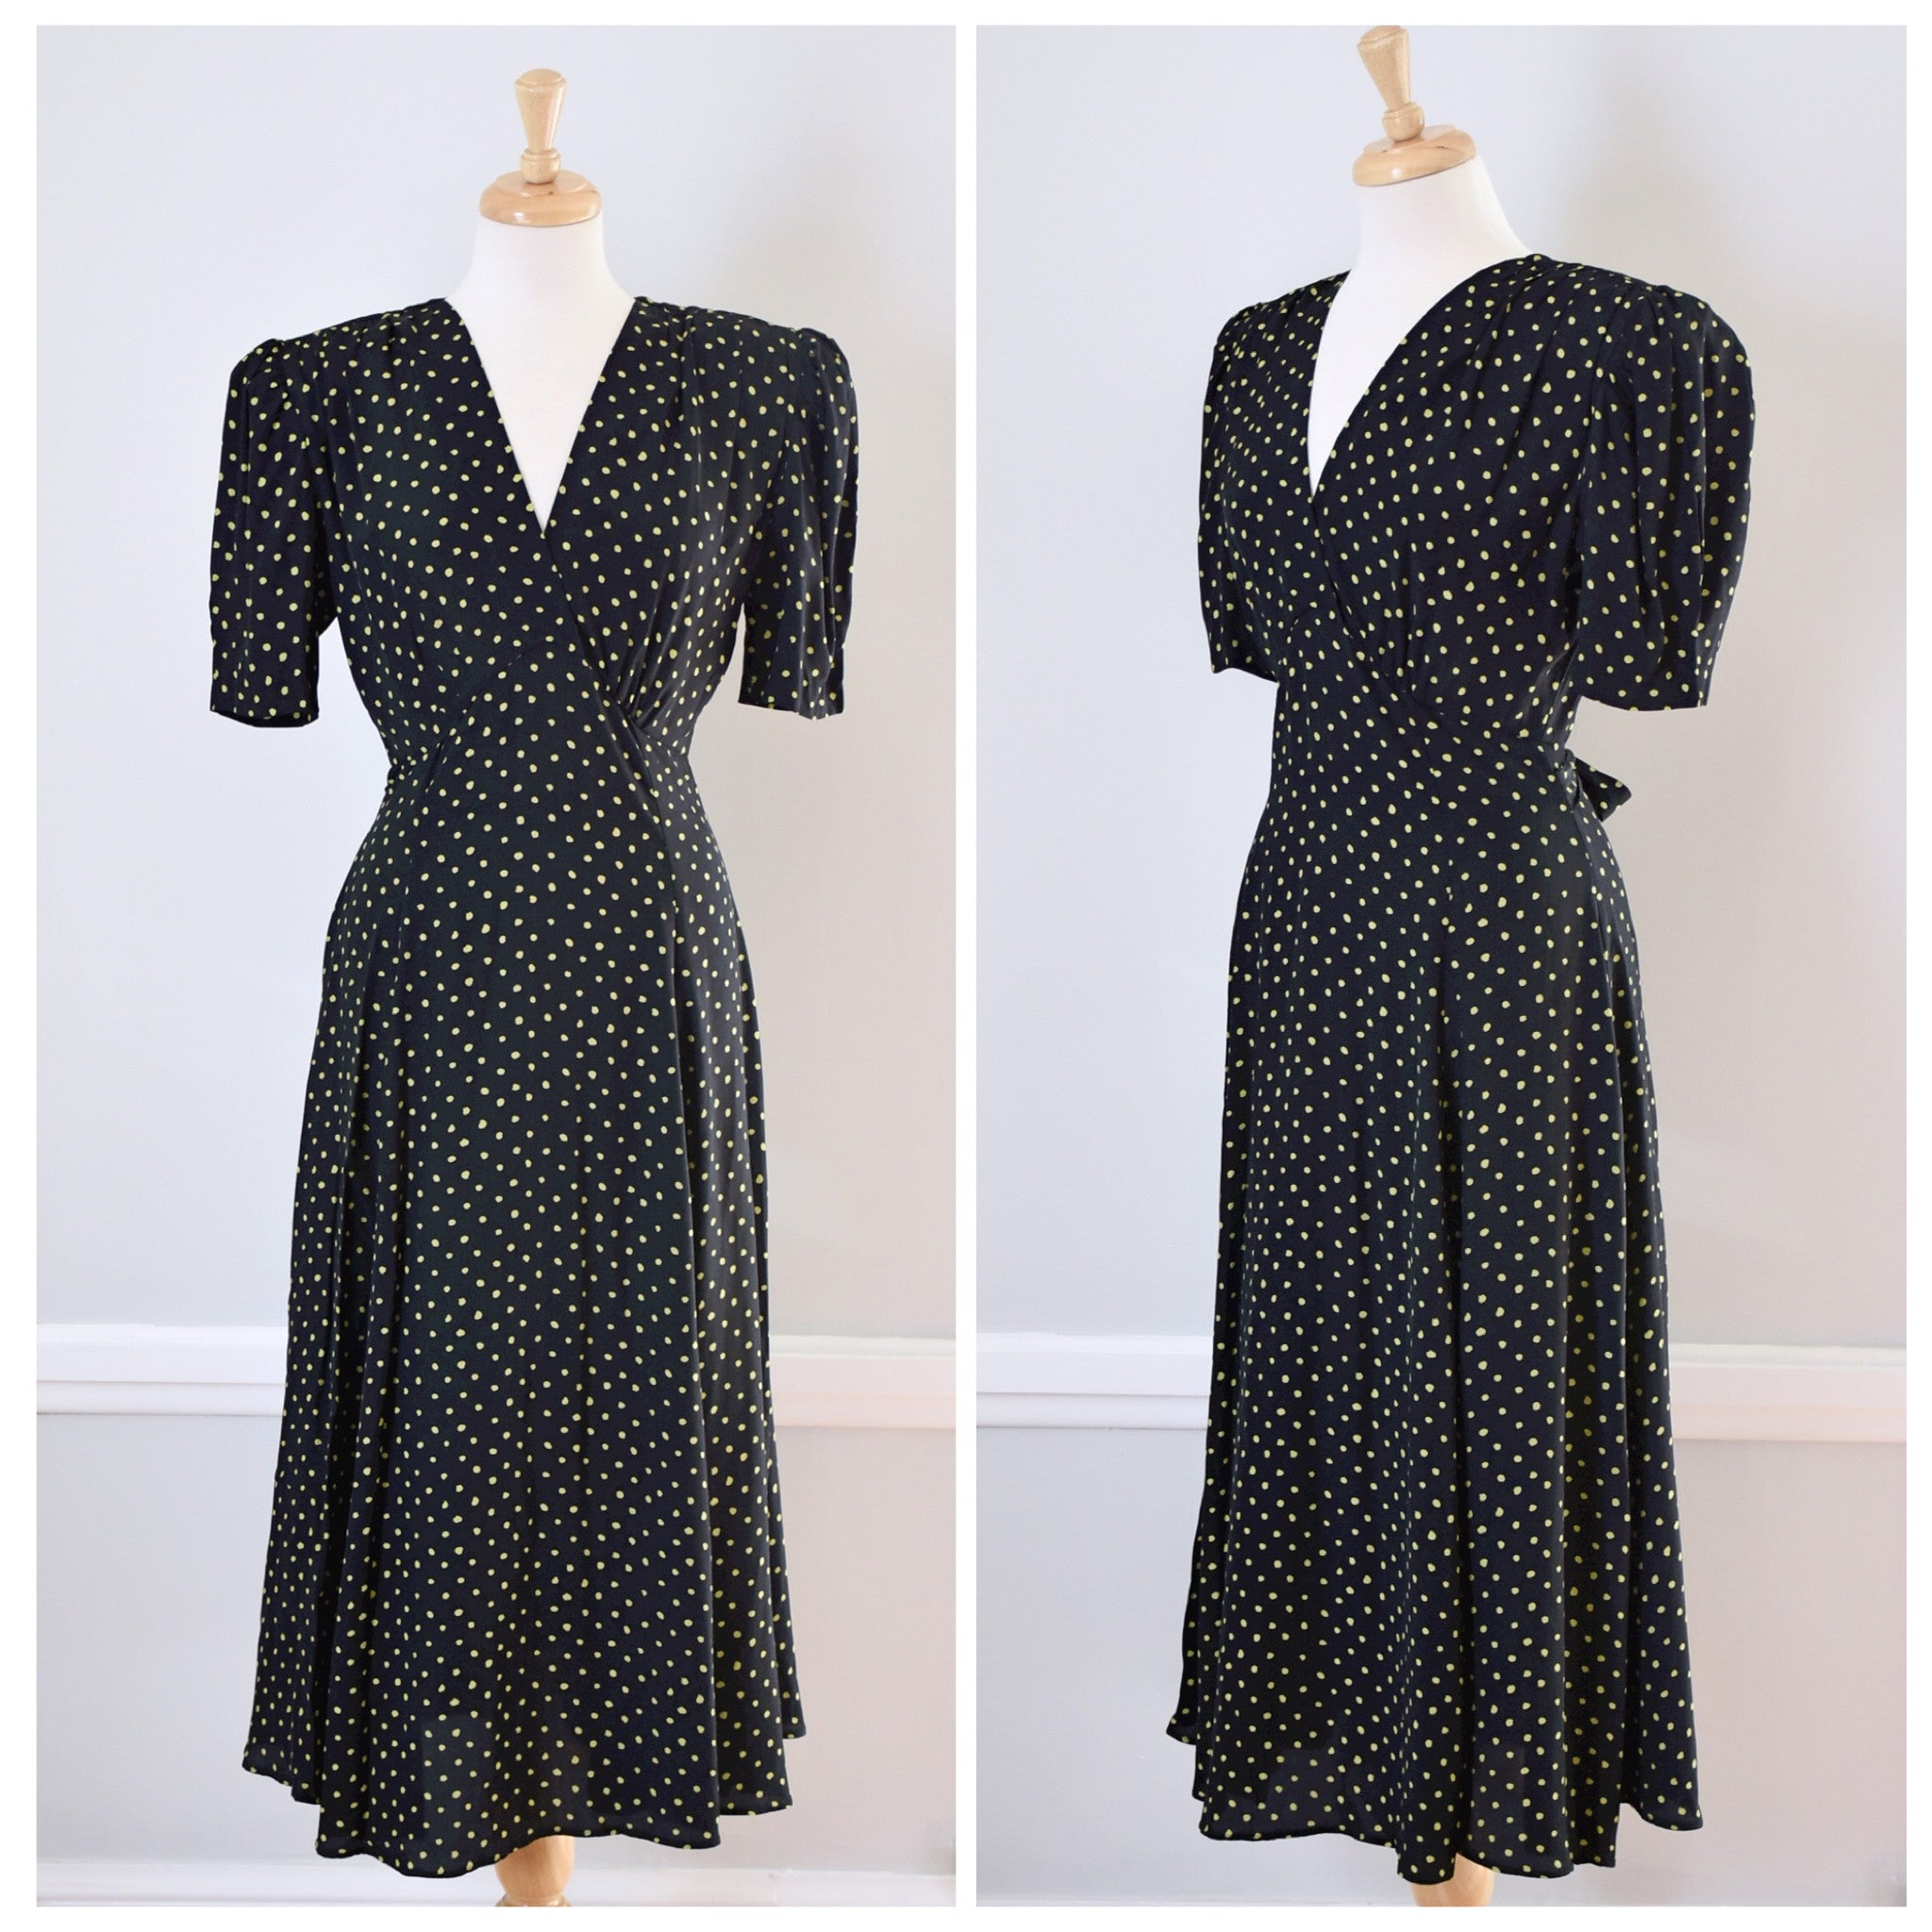 SOLD // 80s Black Polka Dot Rayon Dress